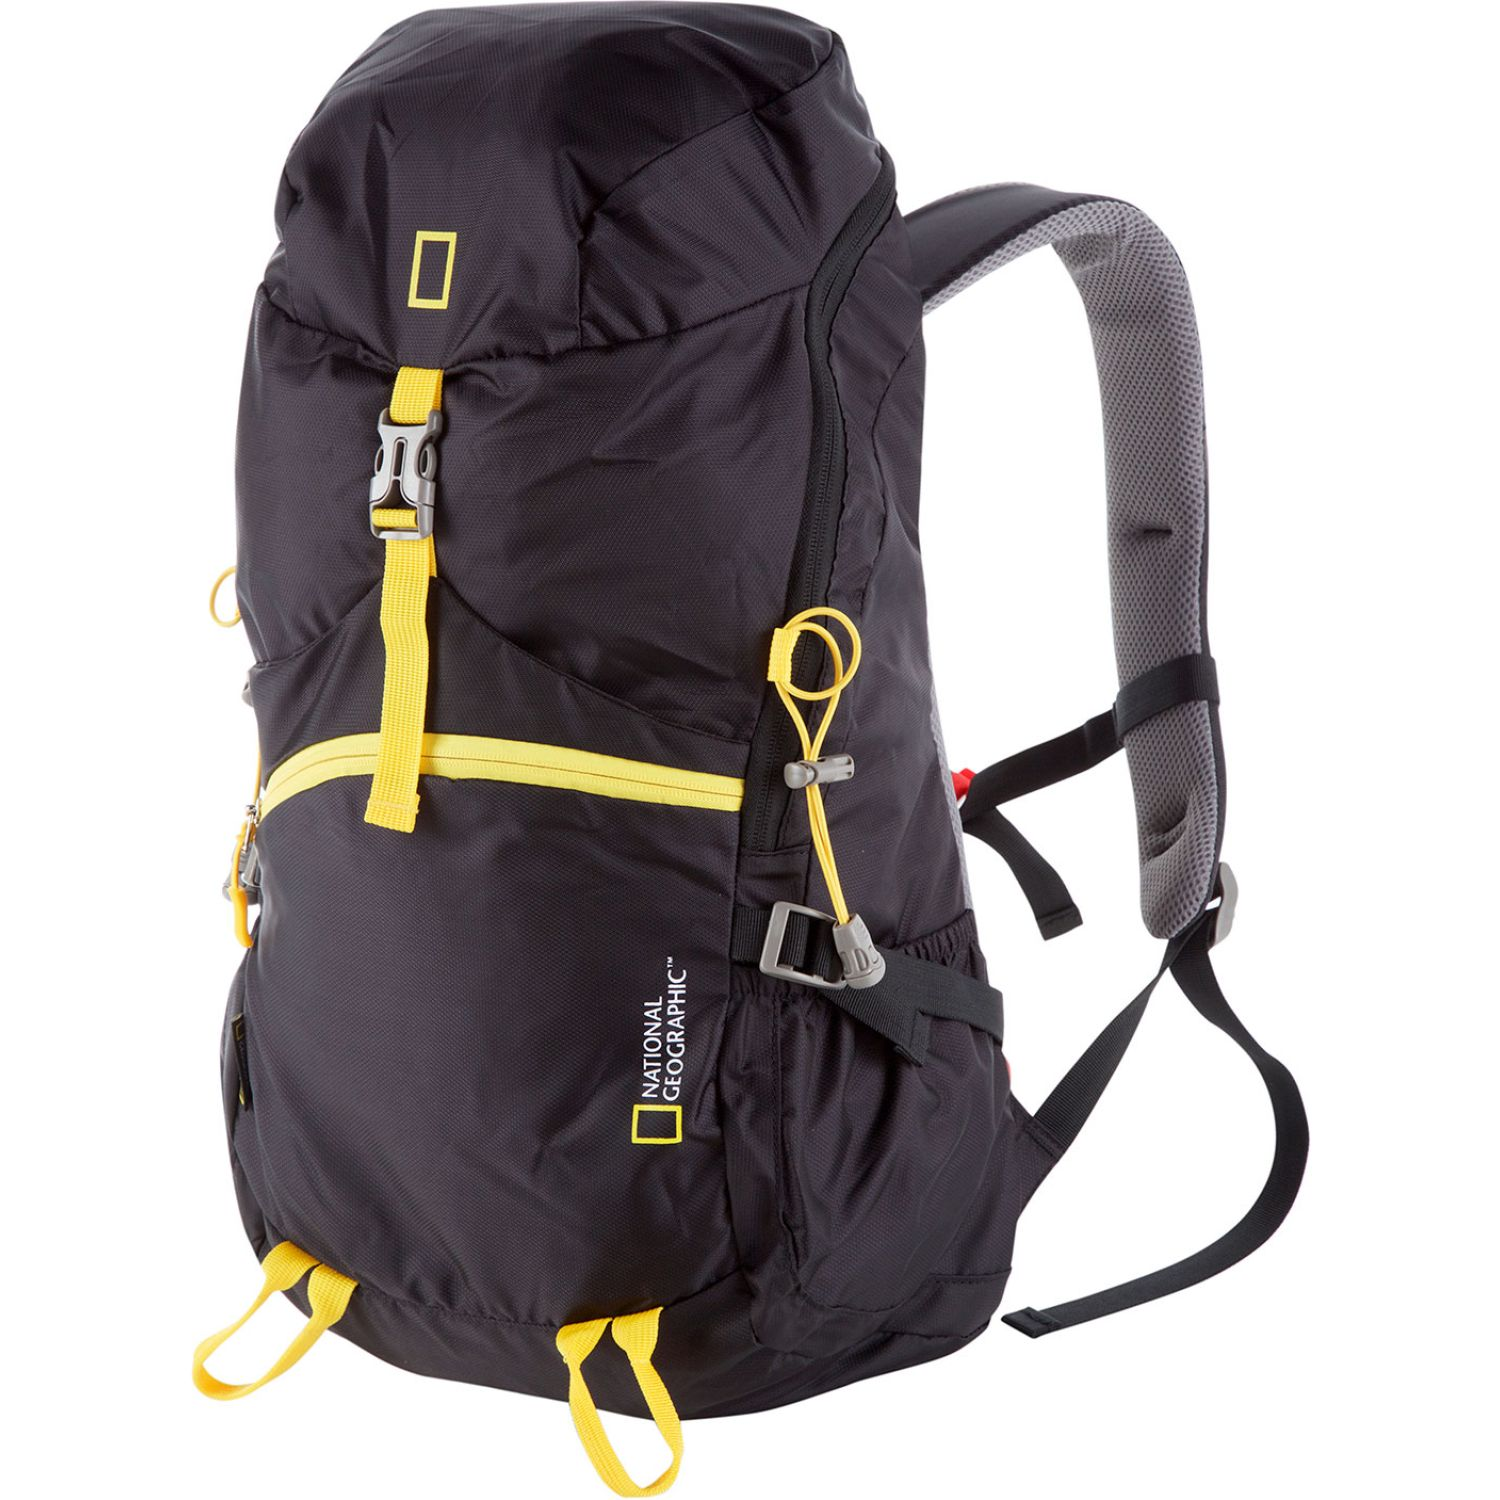 NATIONAL GEOGRAPHIC mochila ontario 25 negro Negro / amarillo Mochilas Multipropósitos